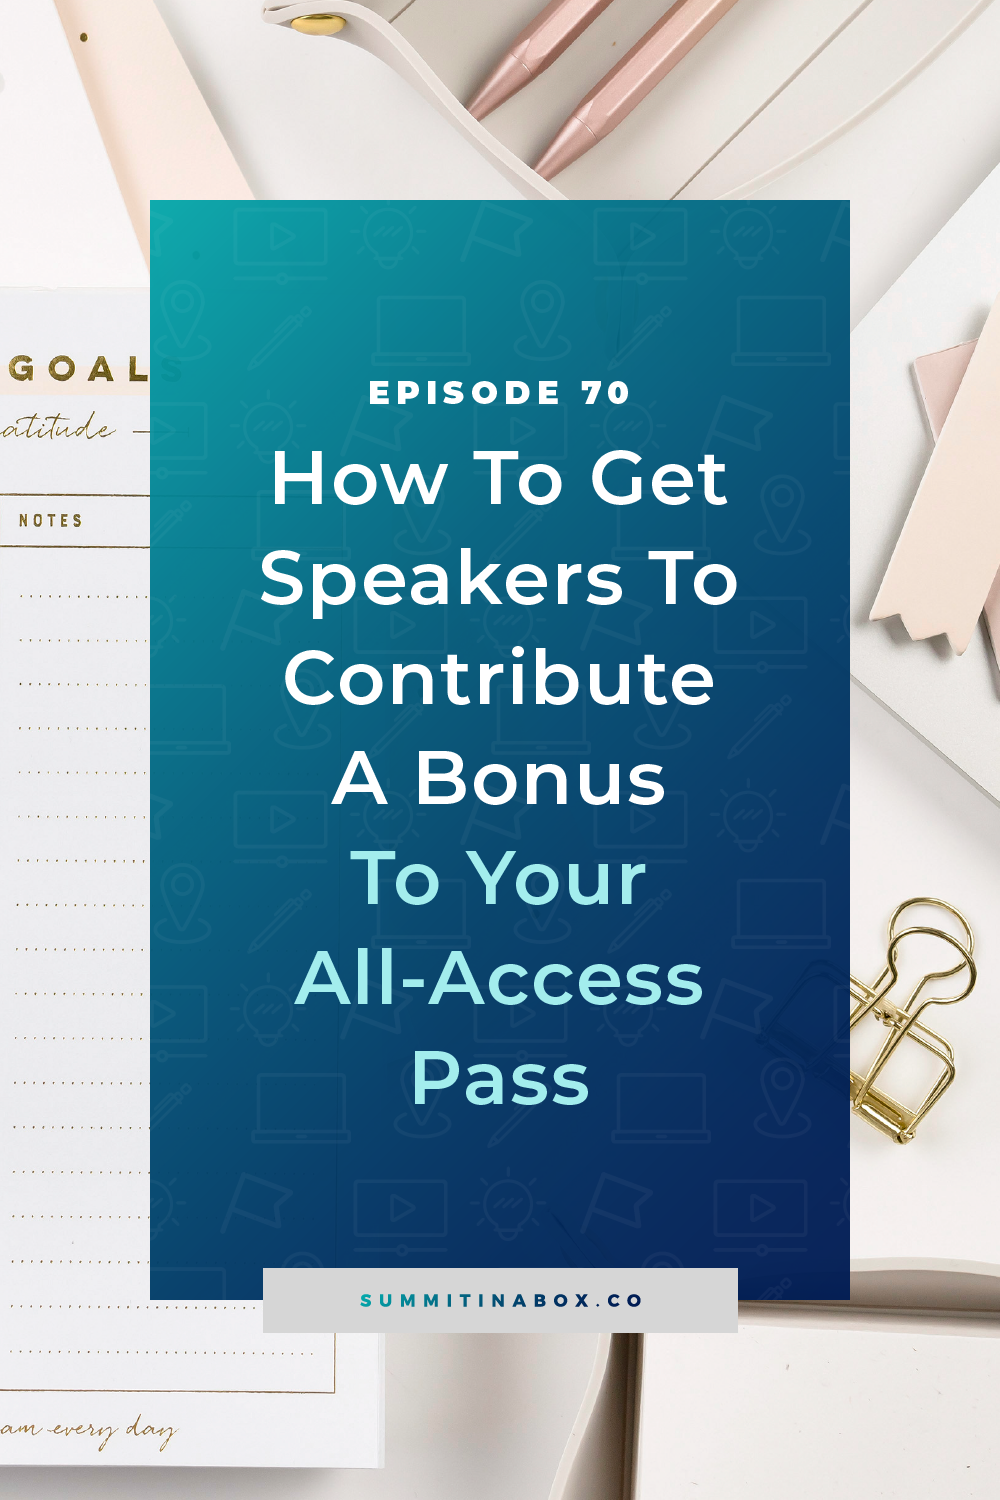 A virtual summit all-access pass that sells is all about the bonuses. Here's how to encourage speakers to contribute a bonus for your all-access pass.